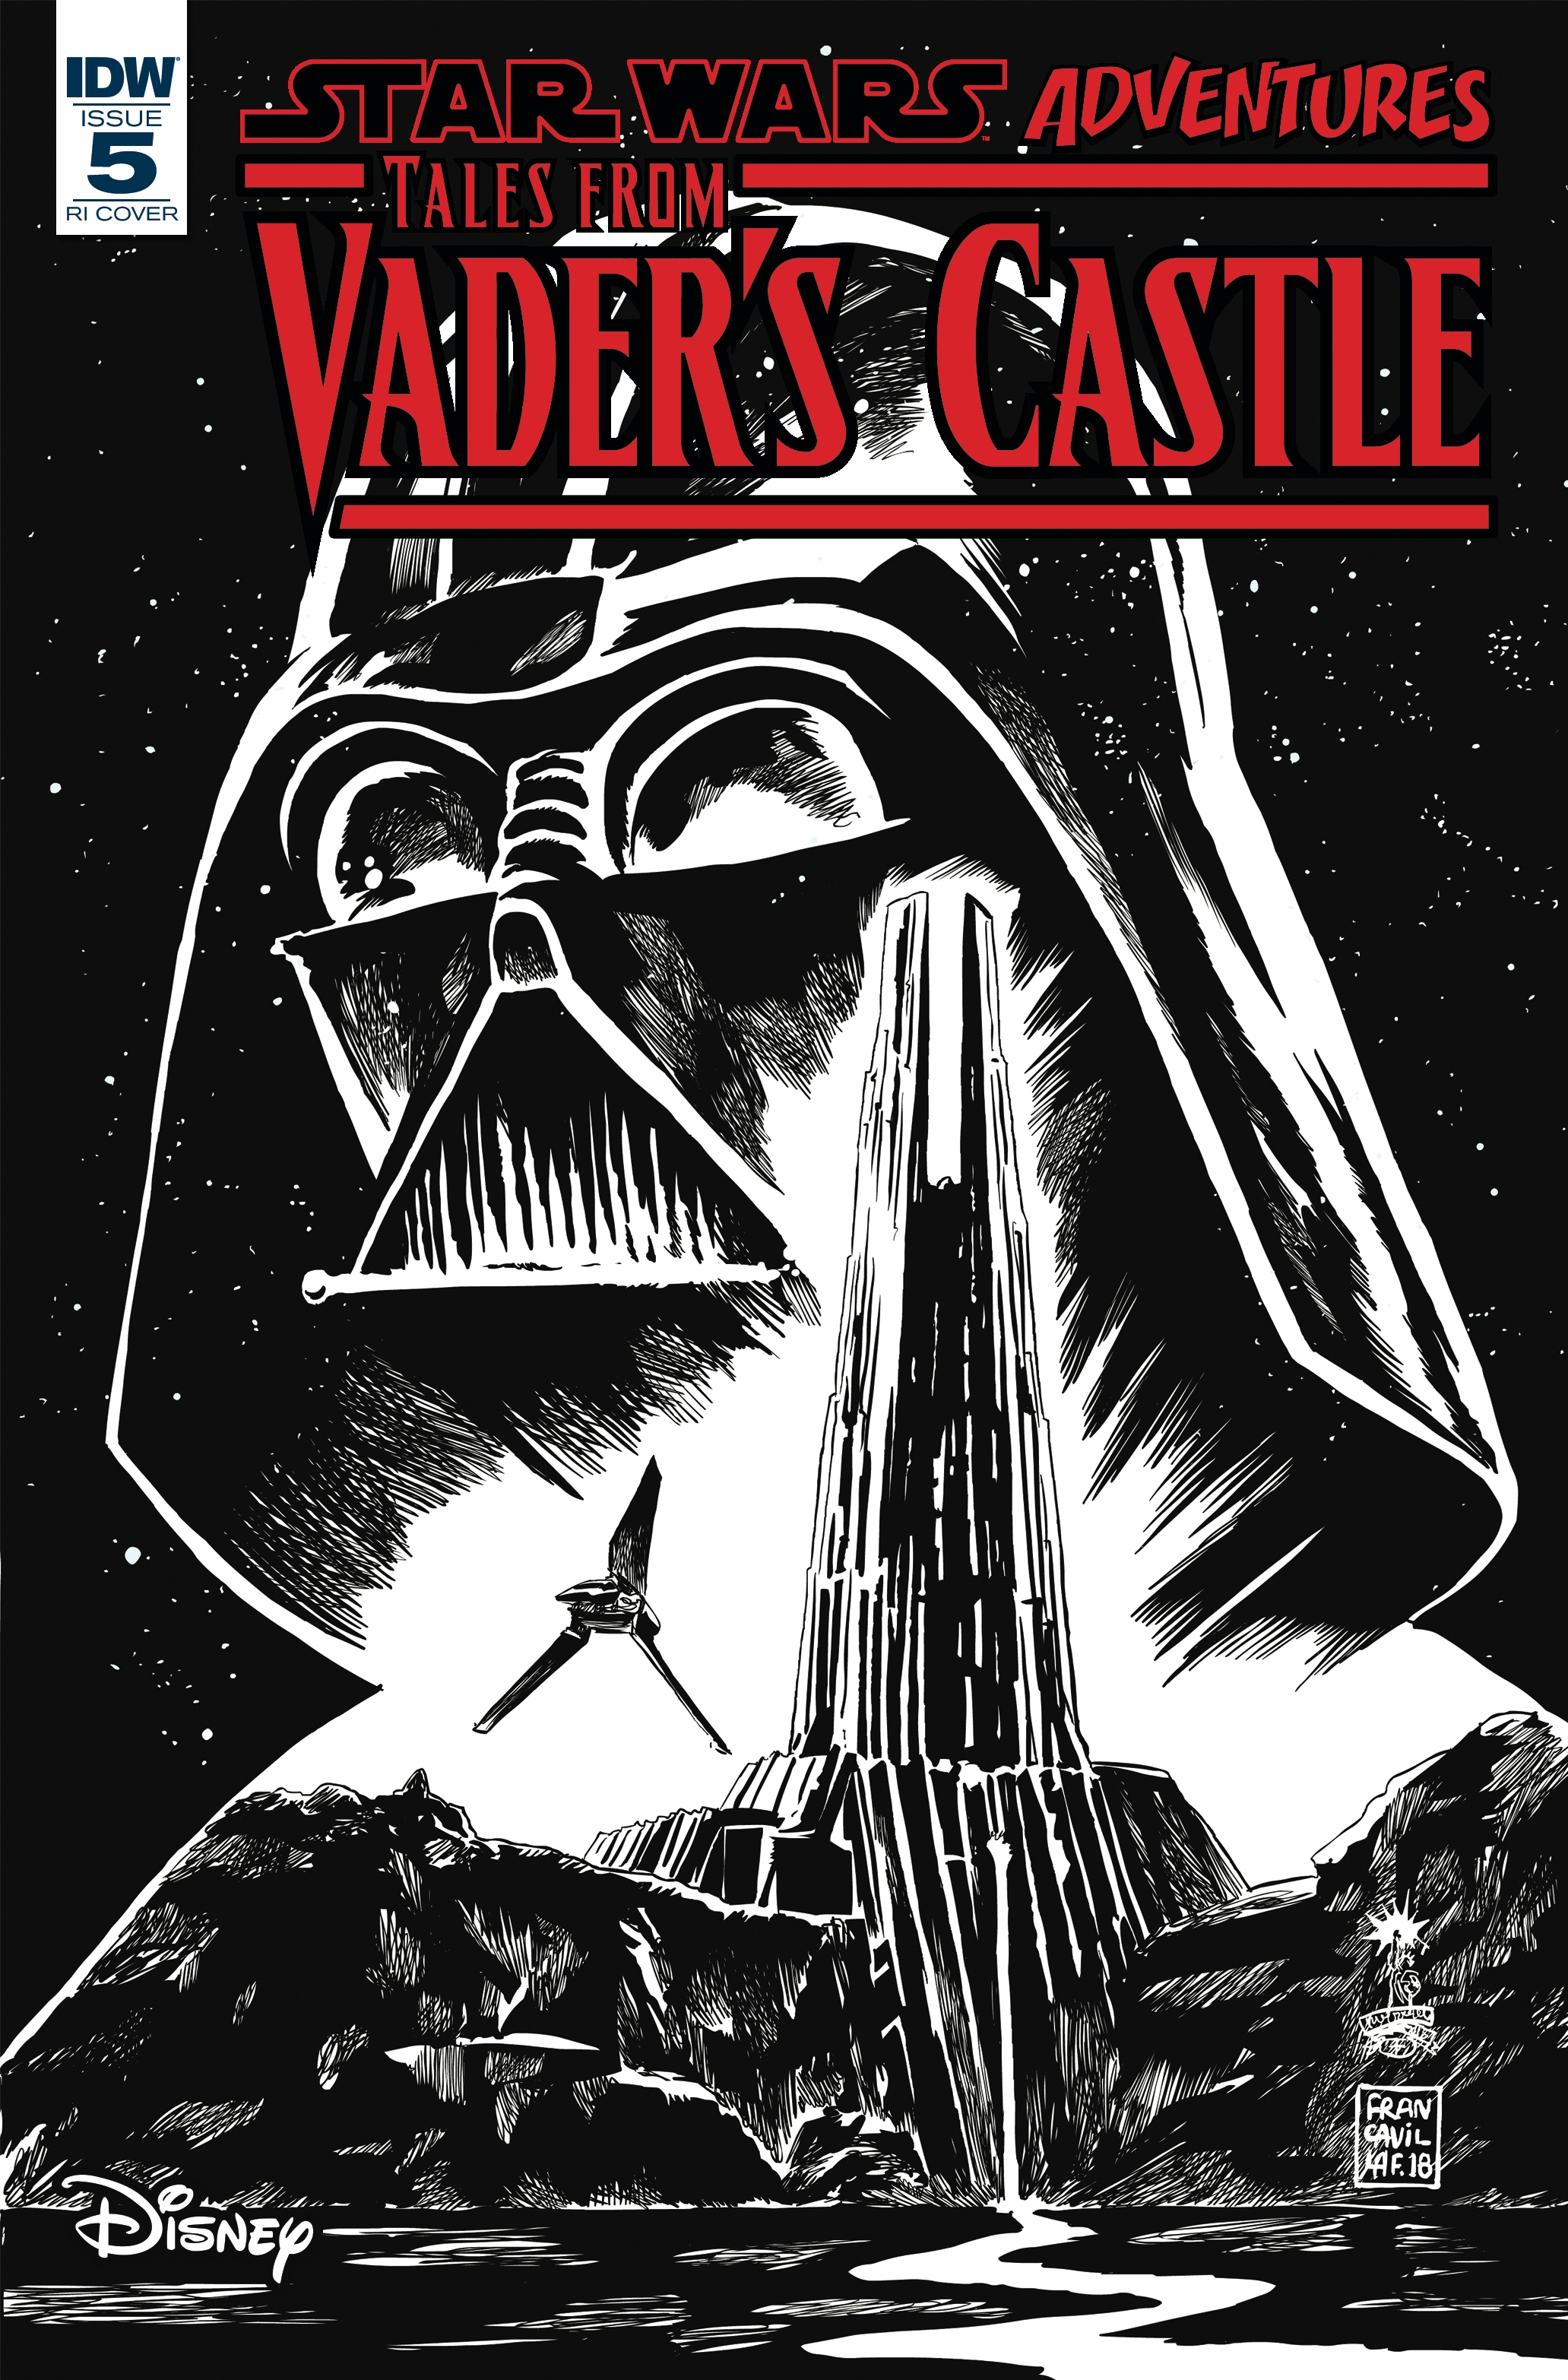 Star Wars Adventures: Tales from Vader's Castle #5 (Francesco Francavilla Black & White Variant Cover) (31.10.2018)